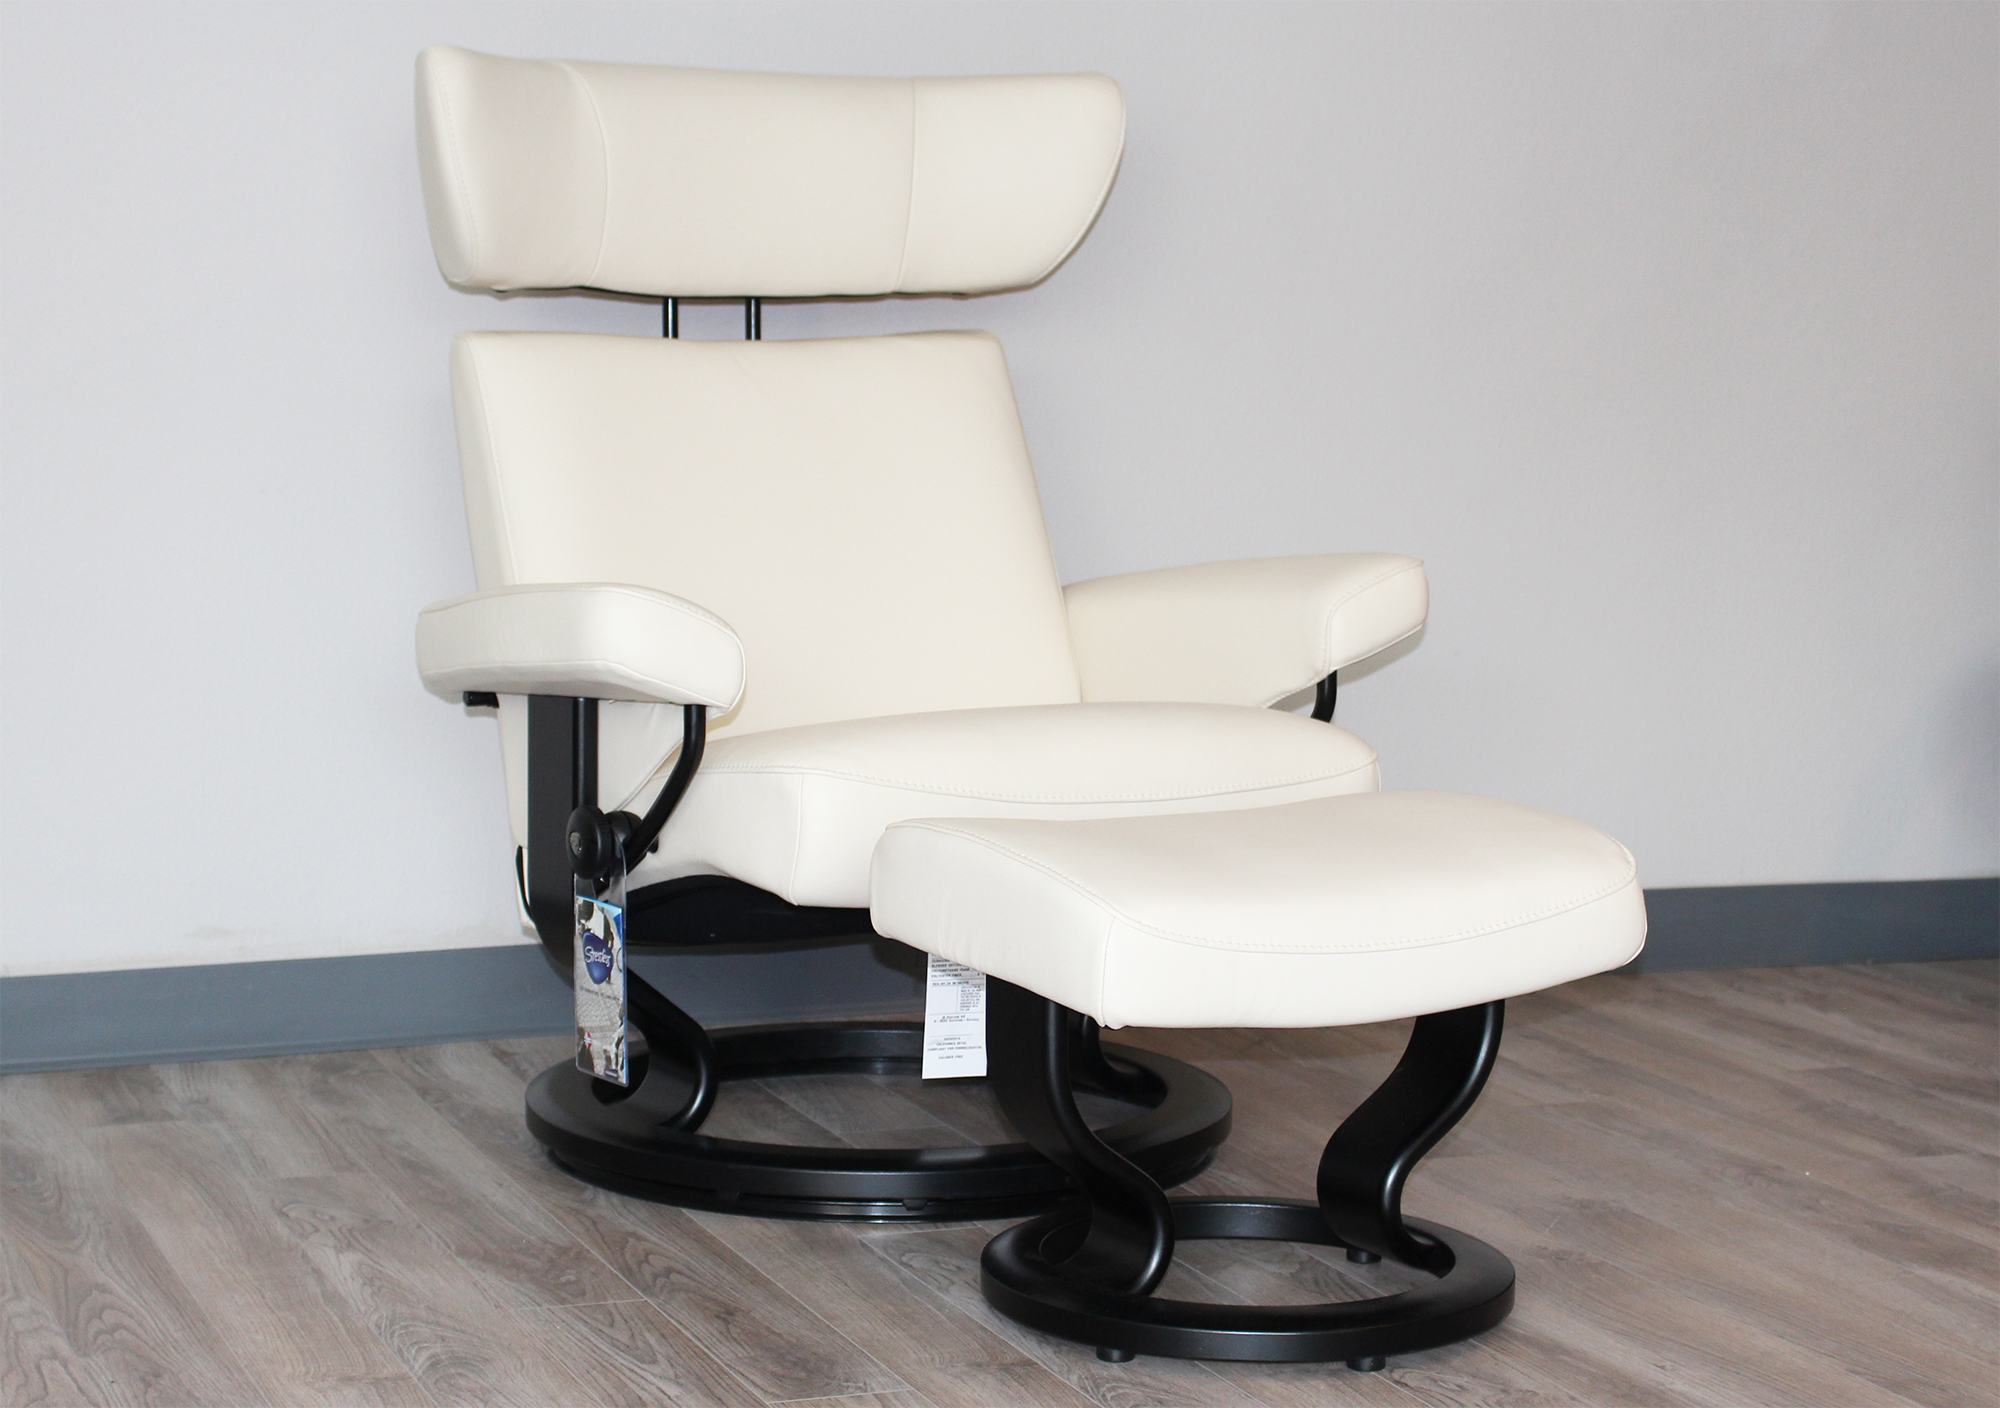 Bon Stressless Viva Recliner Chair And Ottoman In Paloma Vanilla Leather